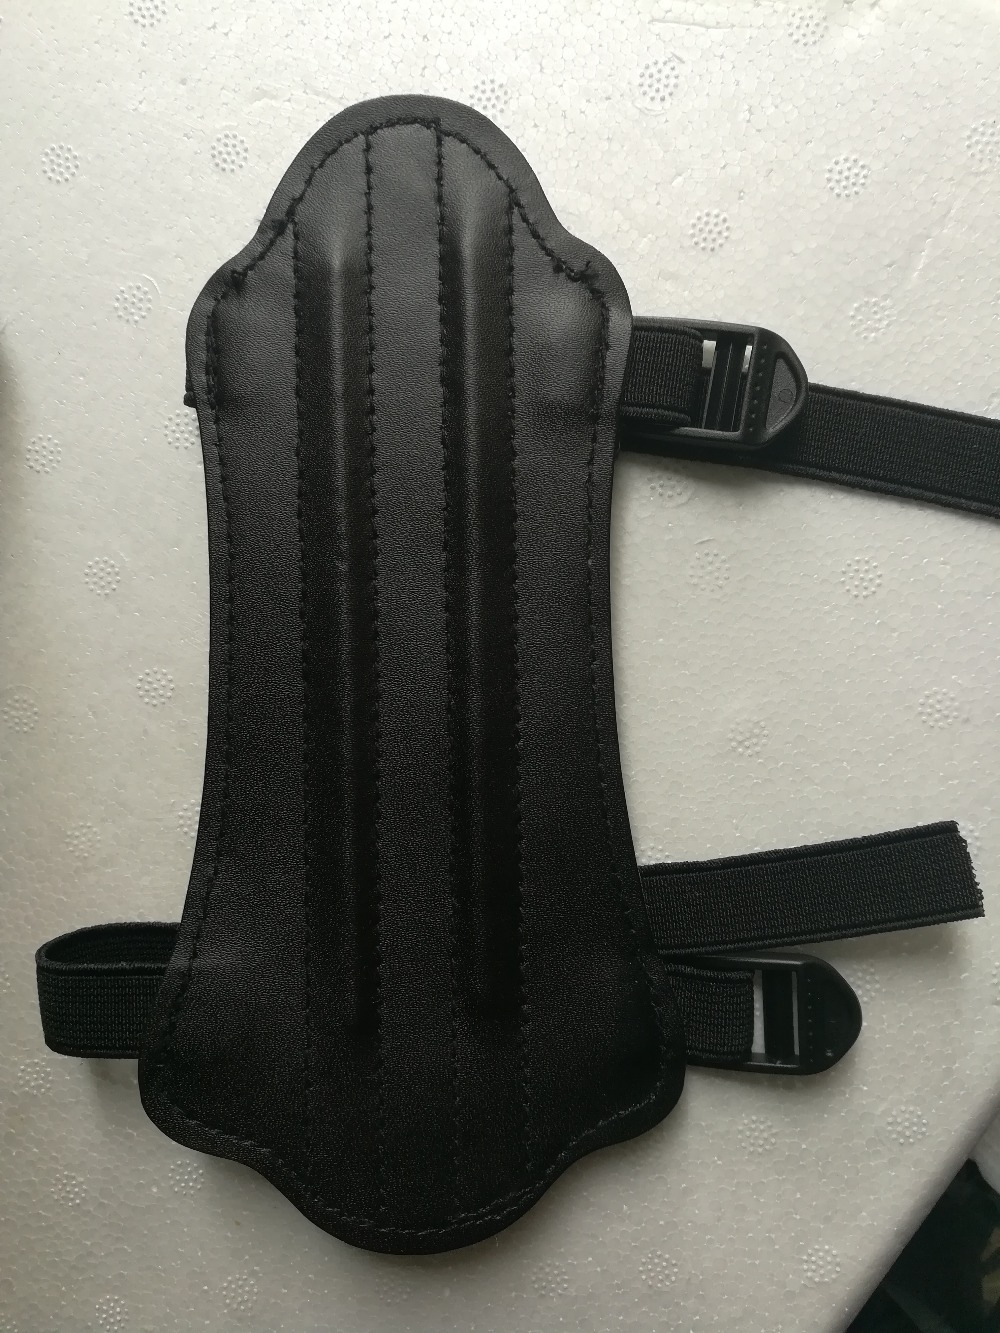 Leather Archery Arm Guard